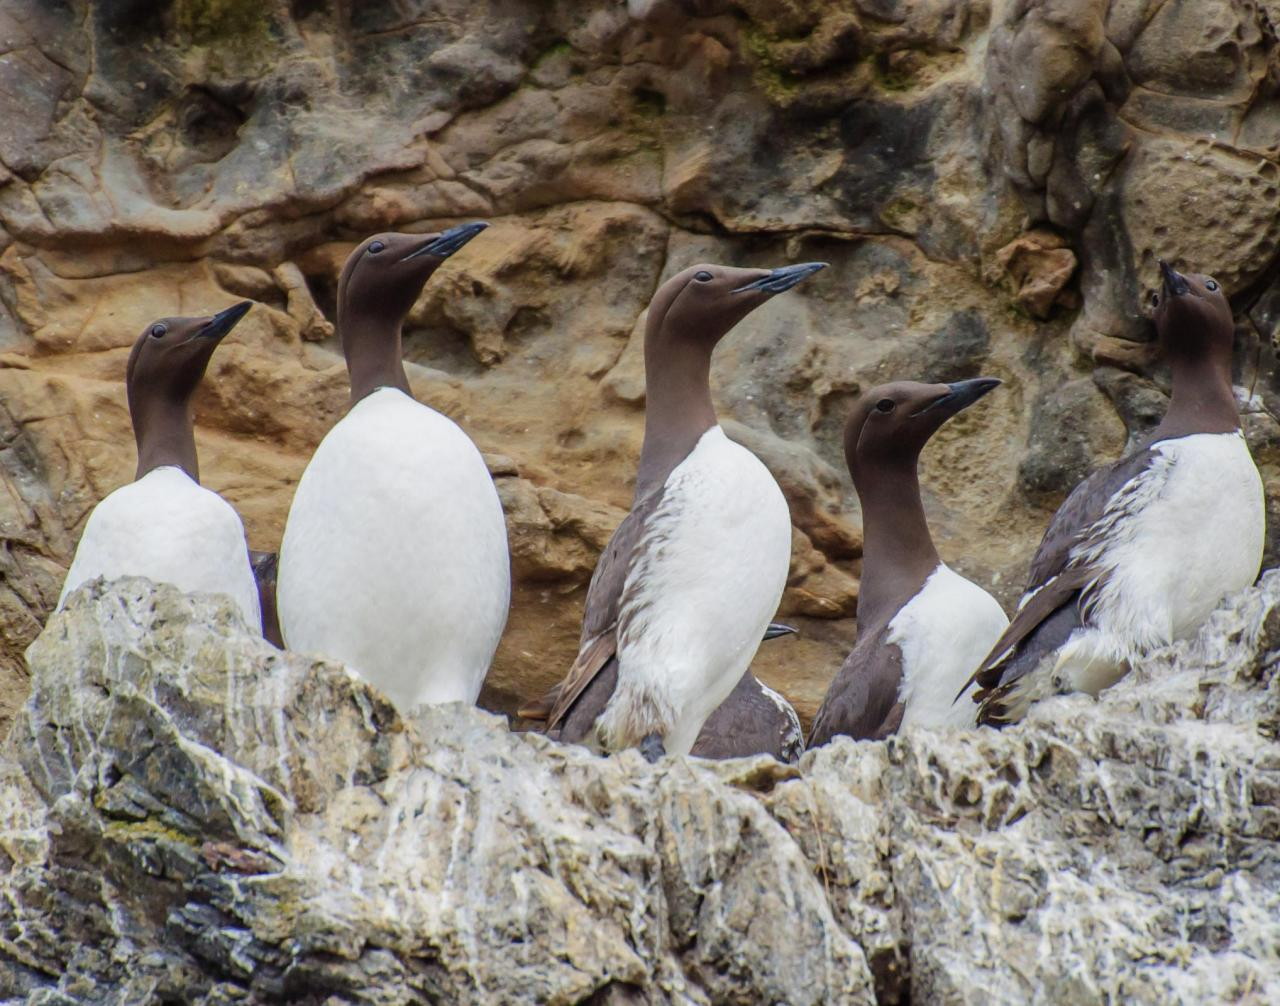 Common Murres perching on the side of a rock.